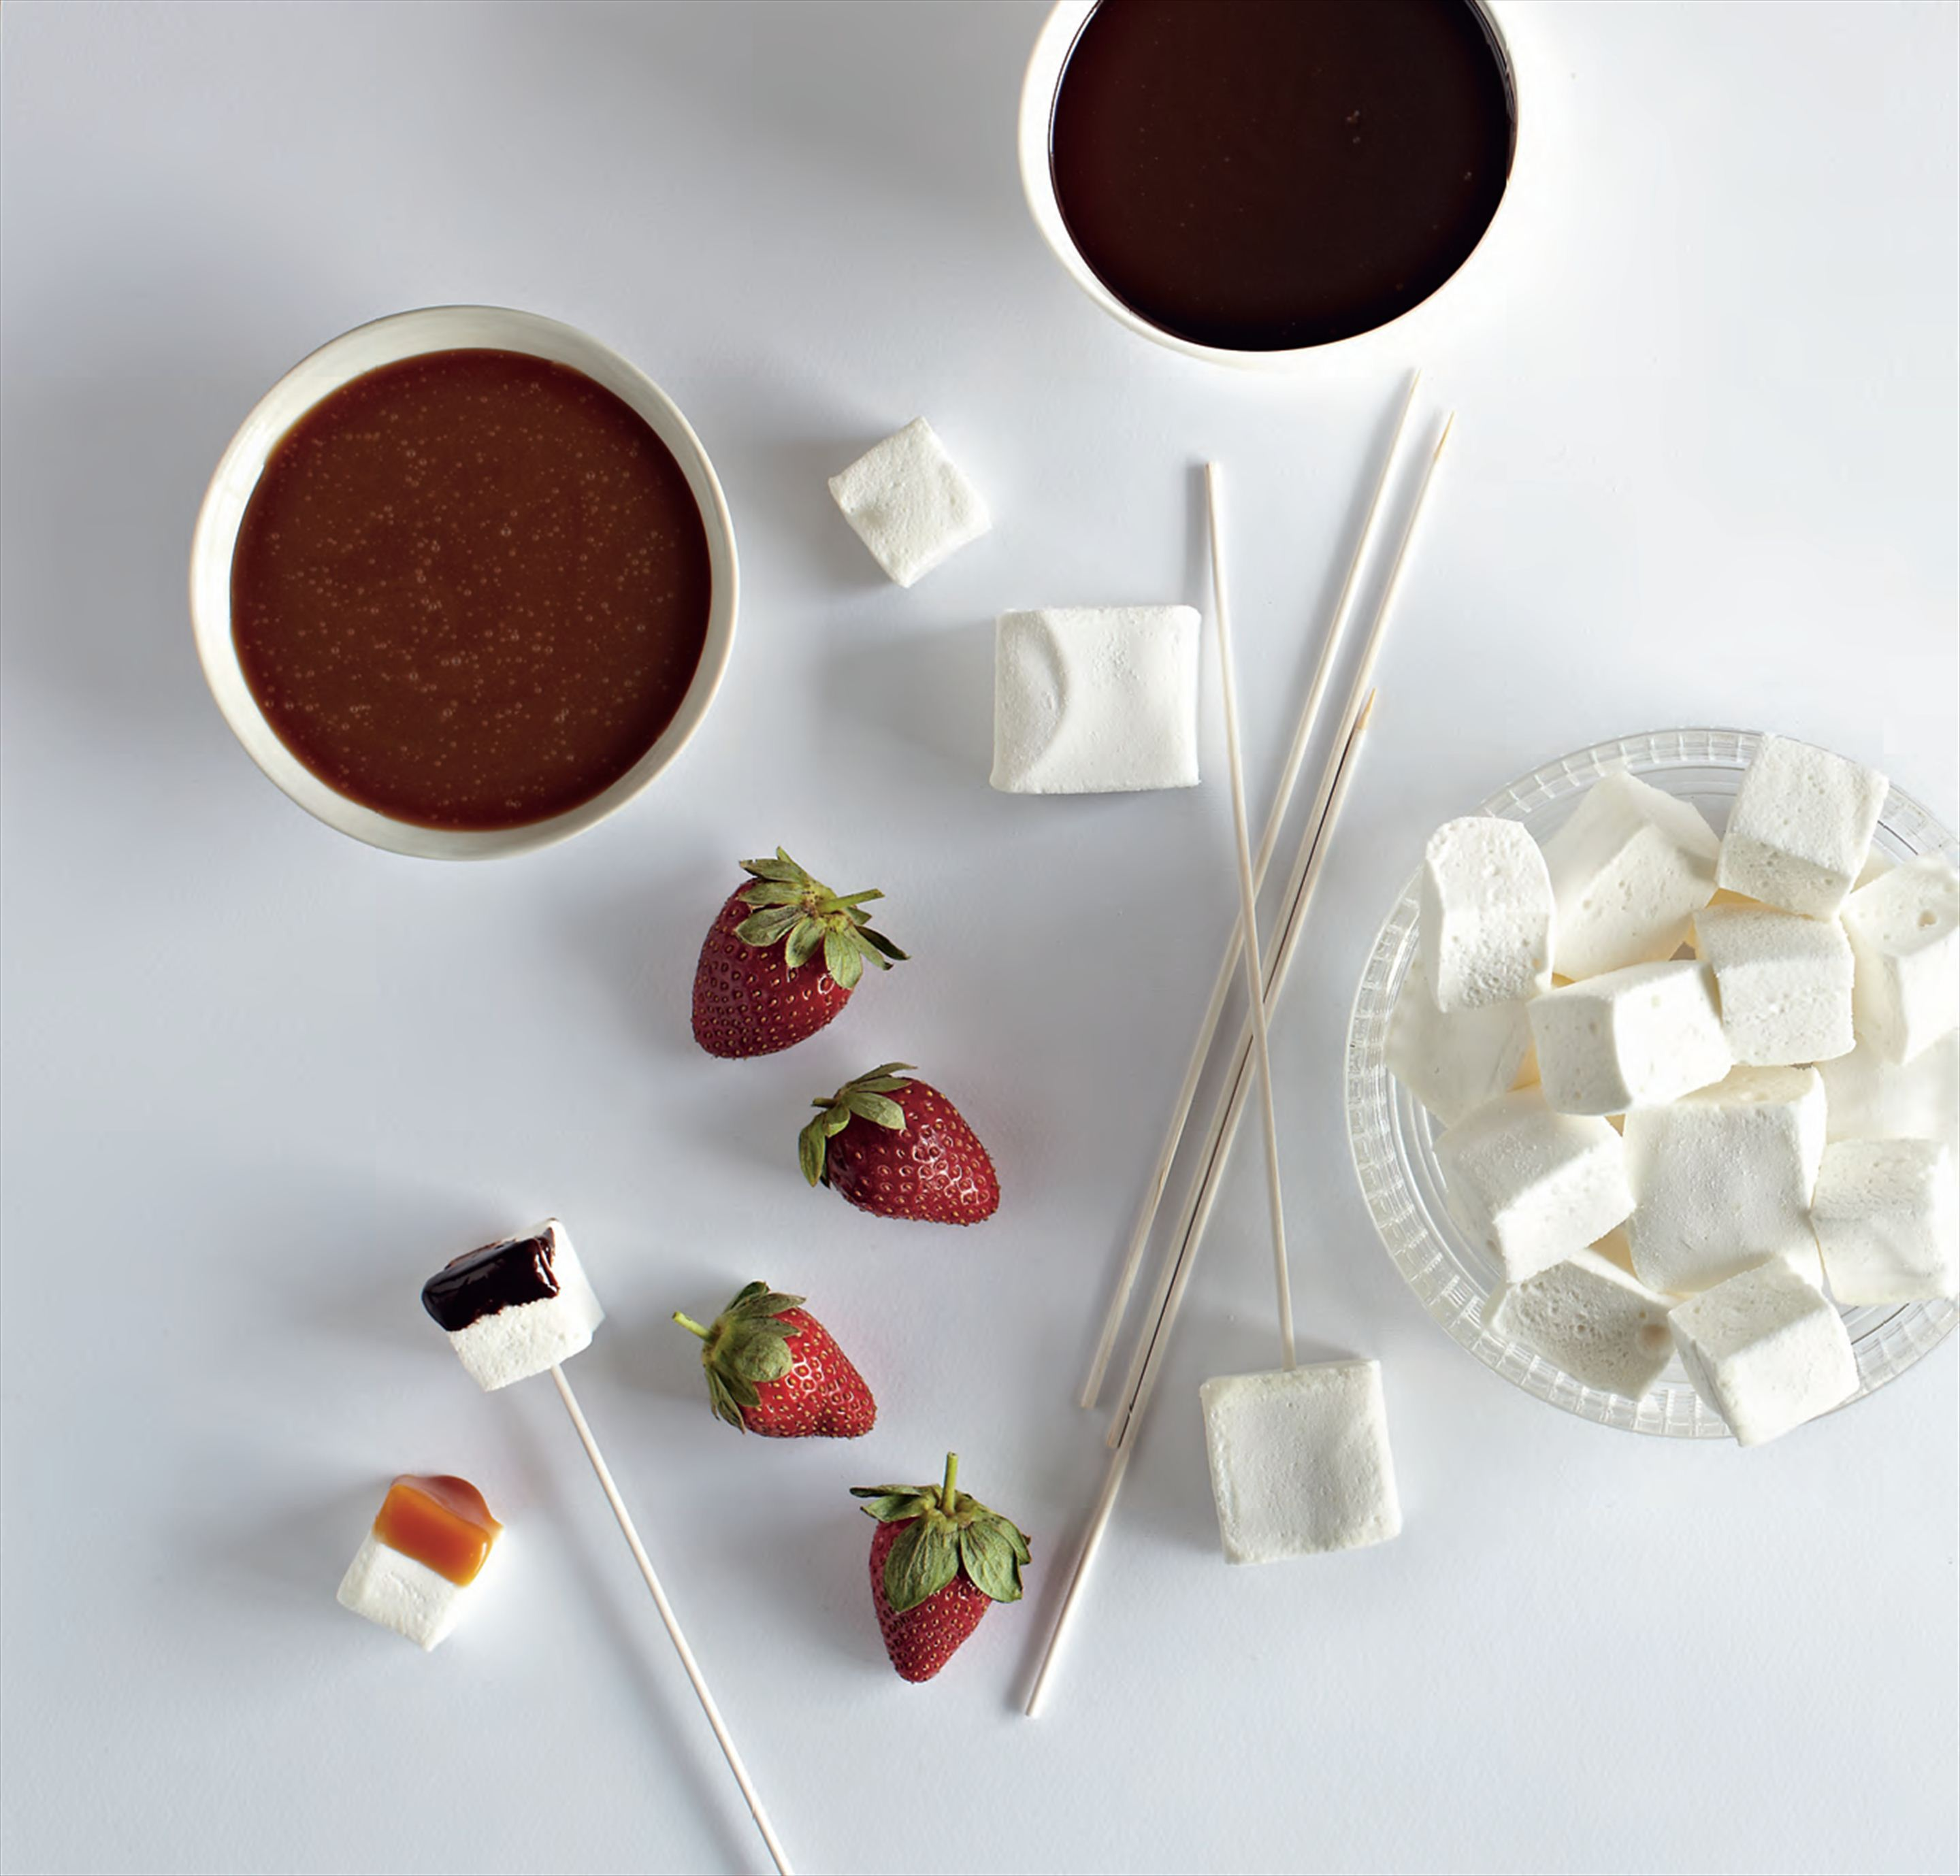 Chocolate & salted caramel fondue